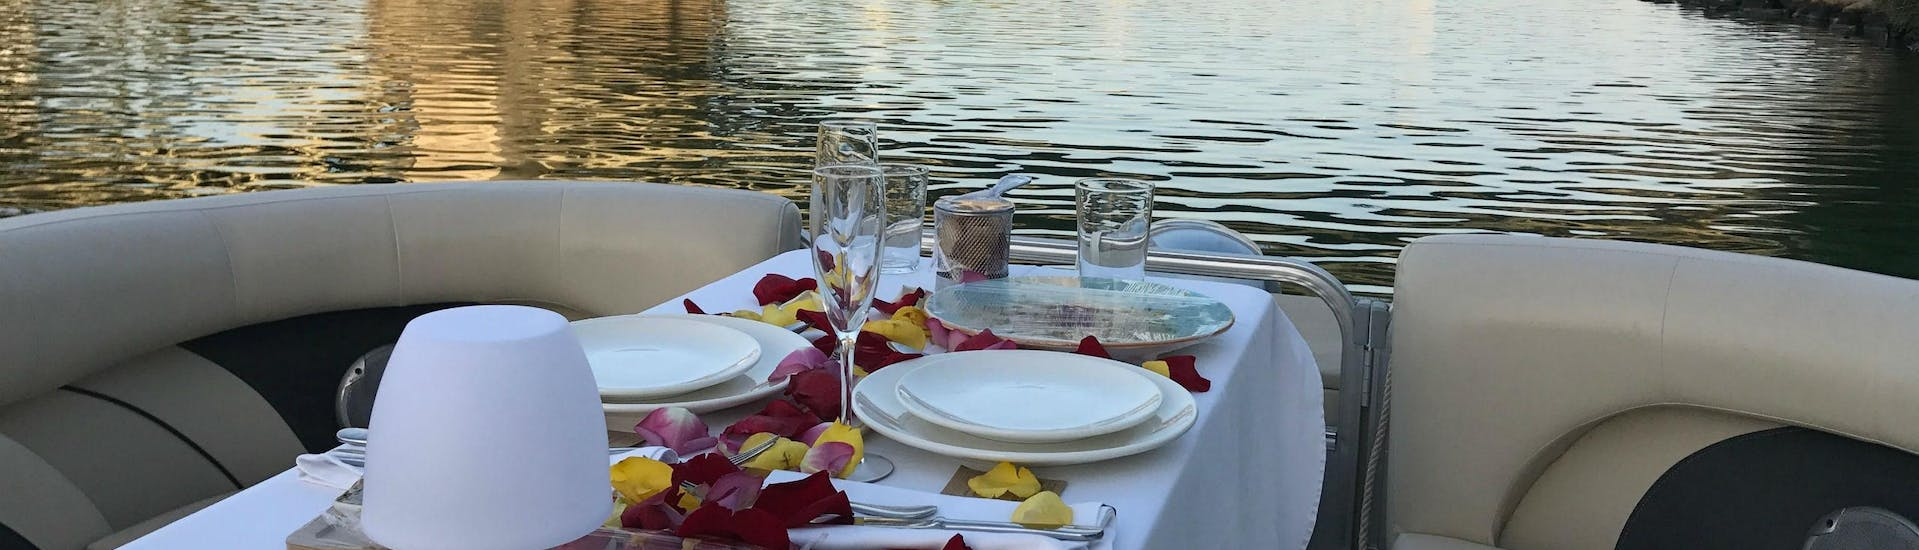 Private Sightseeing Boat Trip with Tapas in Seville